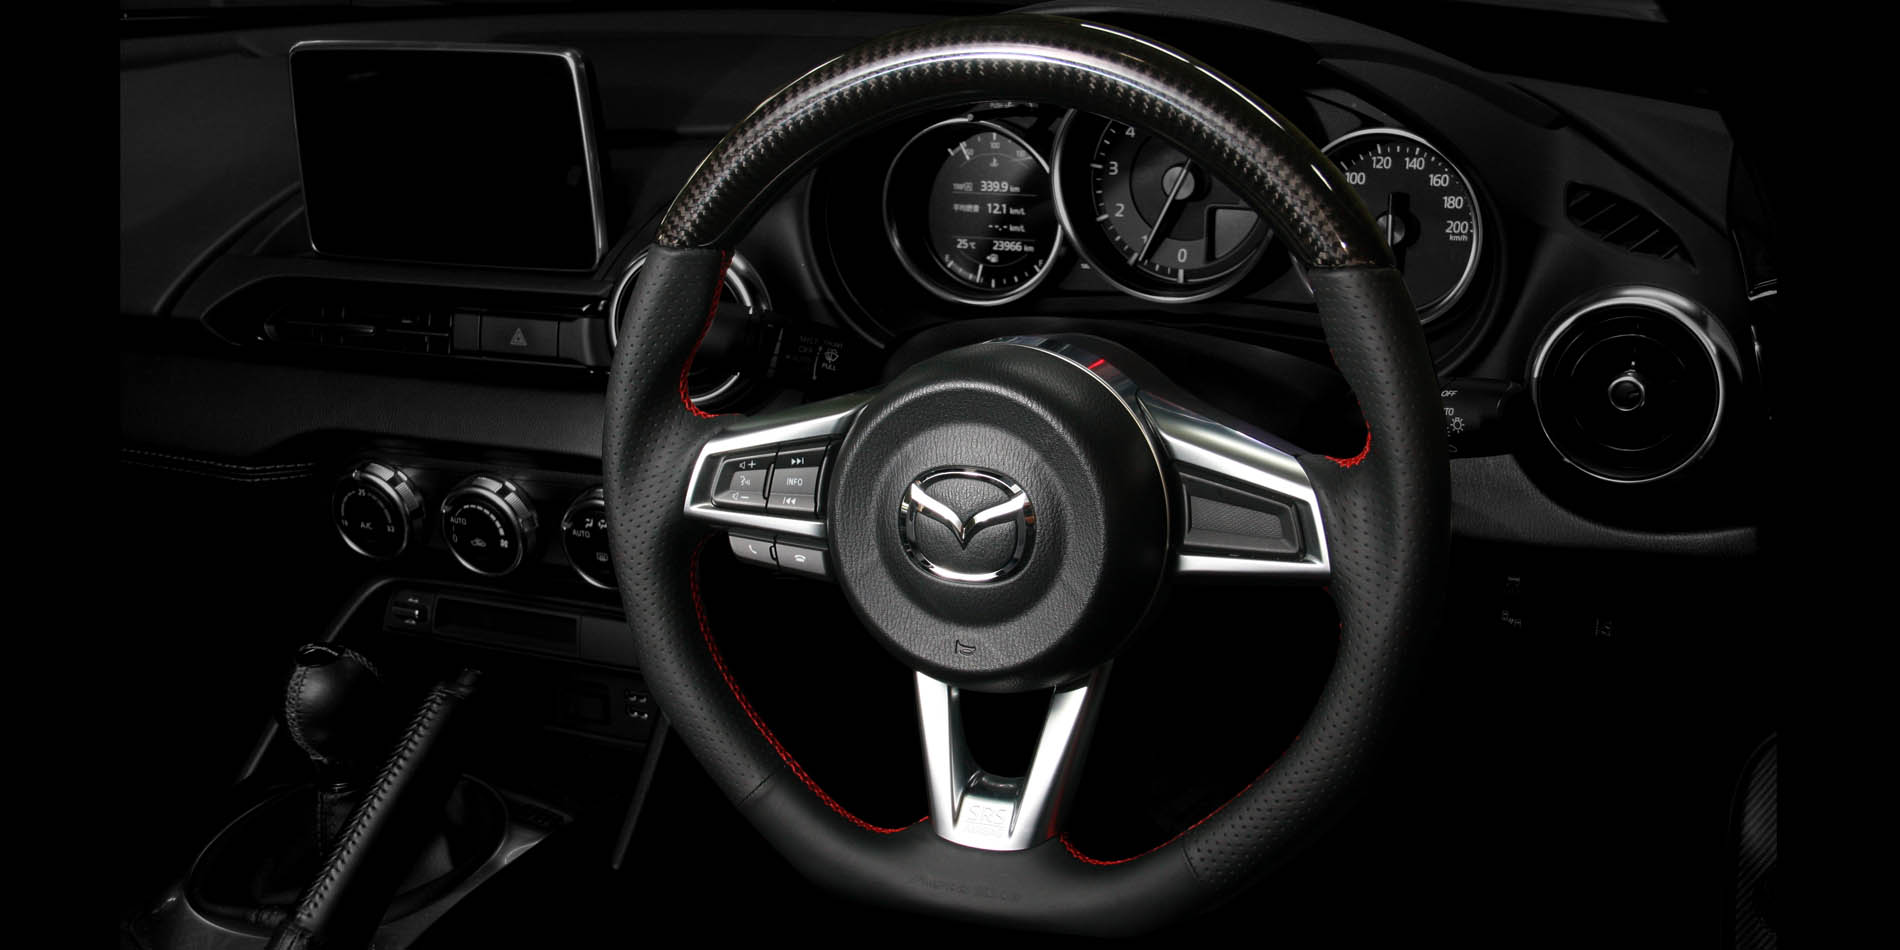 DK-05S for CX-3